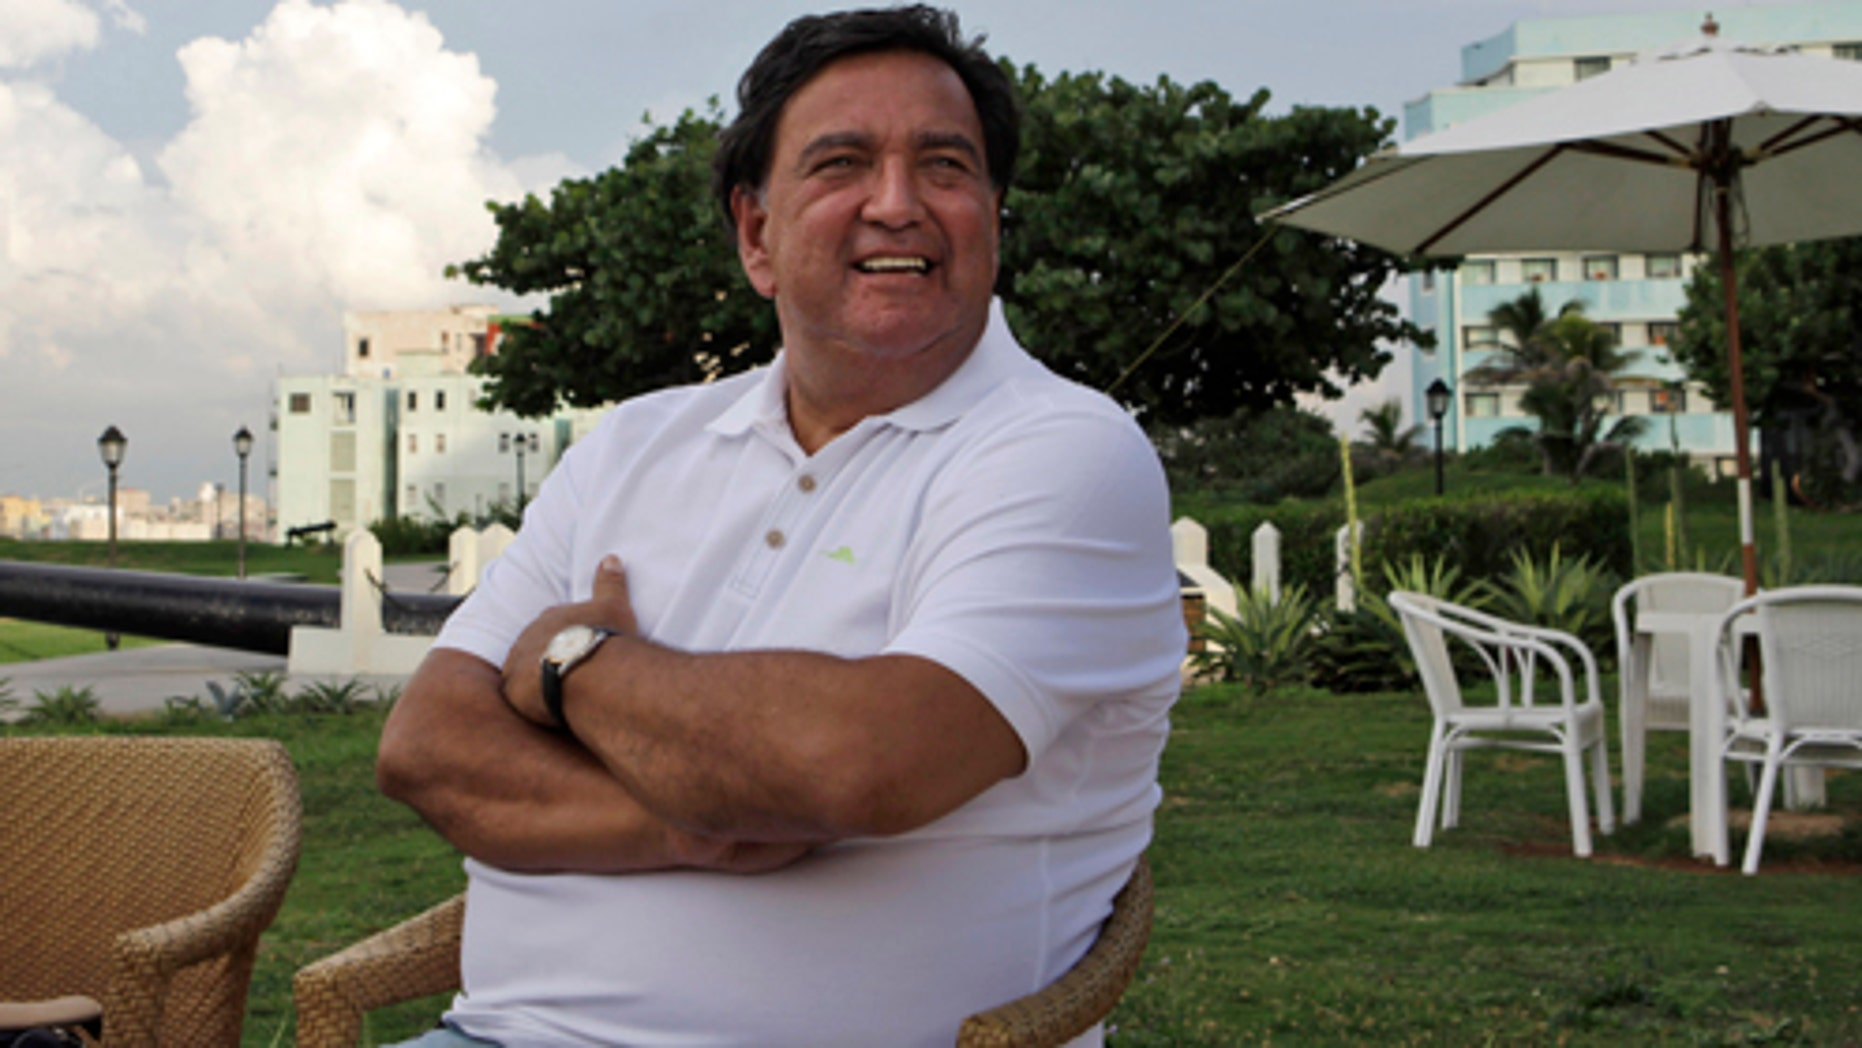 Former New Mexico Gov. Bill Richardson smiles as he sits at an area outside a bar in the National hotel in Havana, Cuba, Wednesday, Sept. 7, 2011. Richardson arrived in Cuba on Wednesday to seek the freedom of a U.S. government subcontractor Alan Gross sentenced to 15 years in prison for bringing communications equipment to the island illegally. (AP Photo/Javier Galeano)